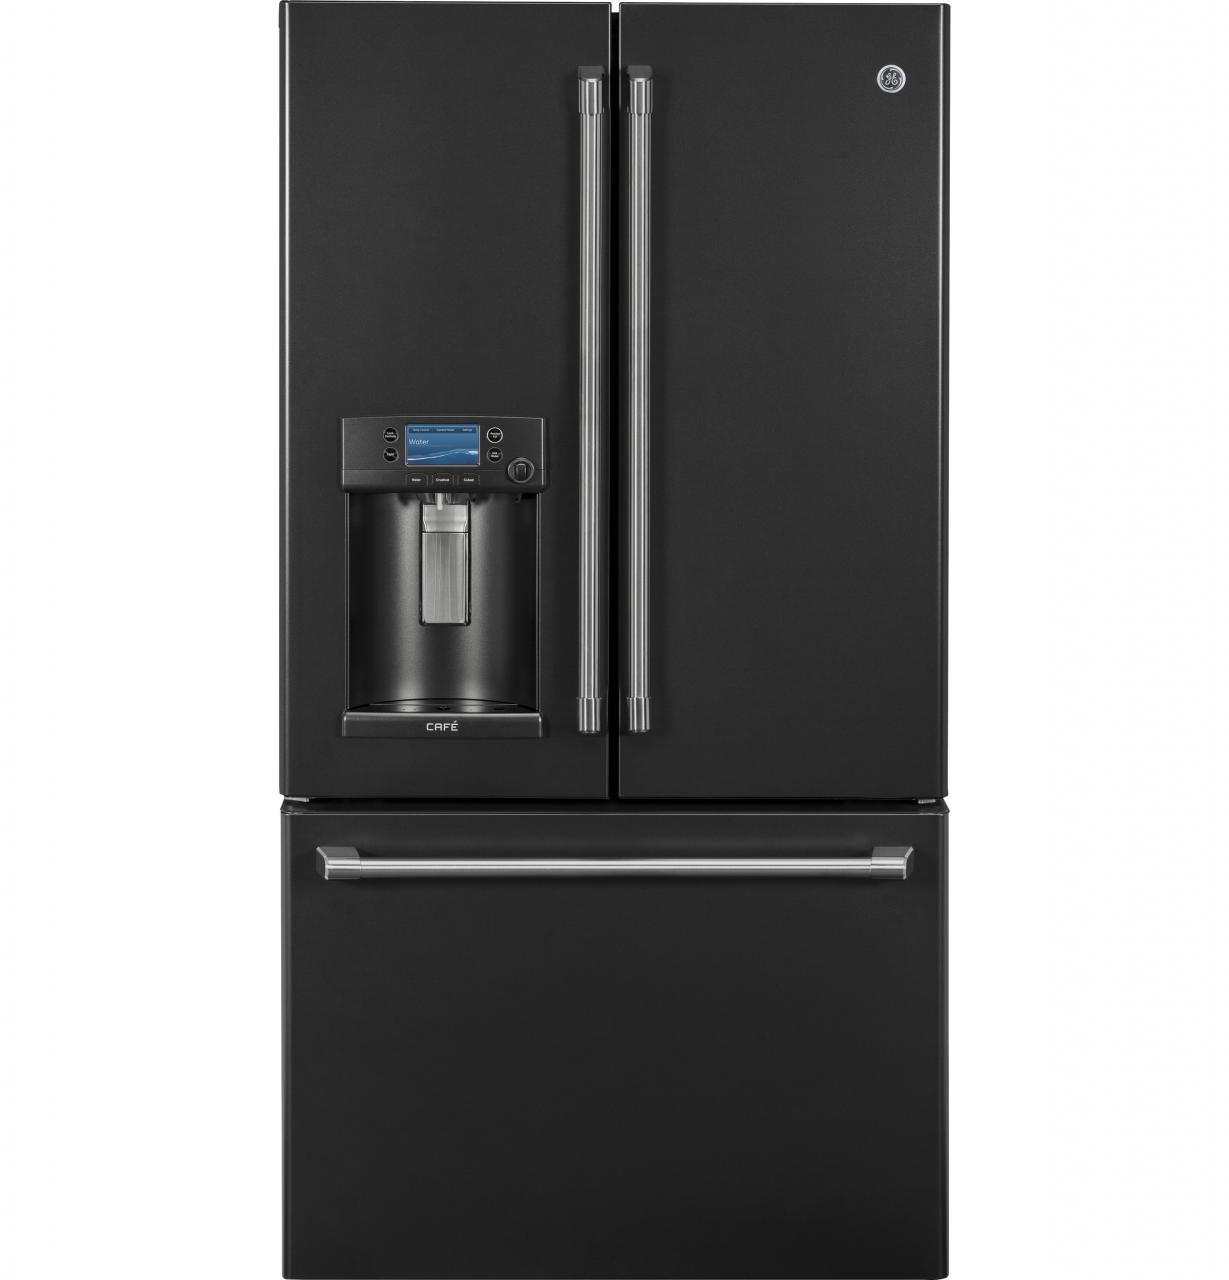 French door refrigerator ge cafe series 278 cu ft french door refrigerator black slate rubansaba